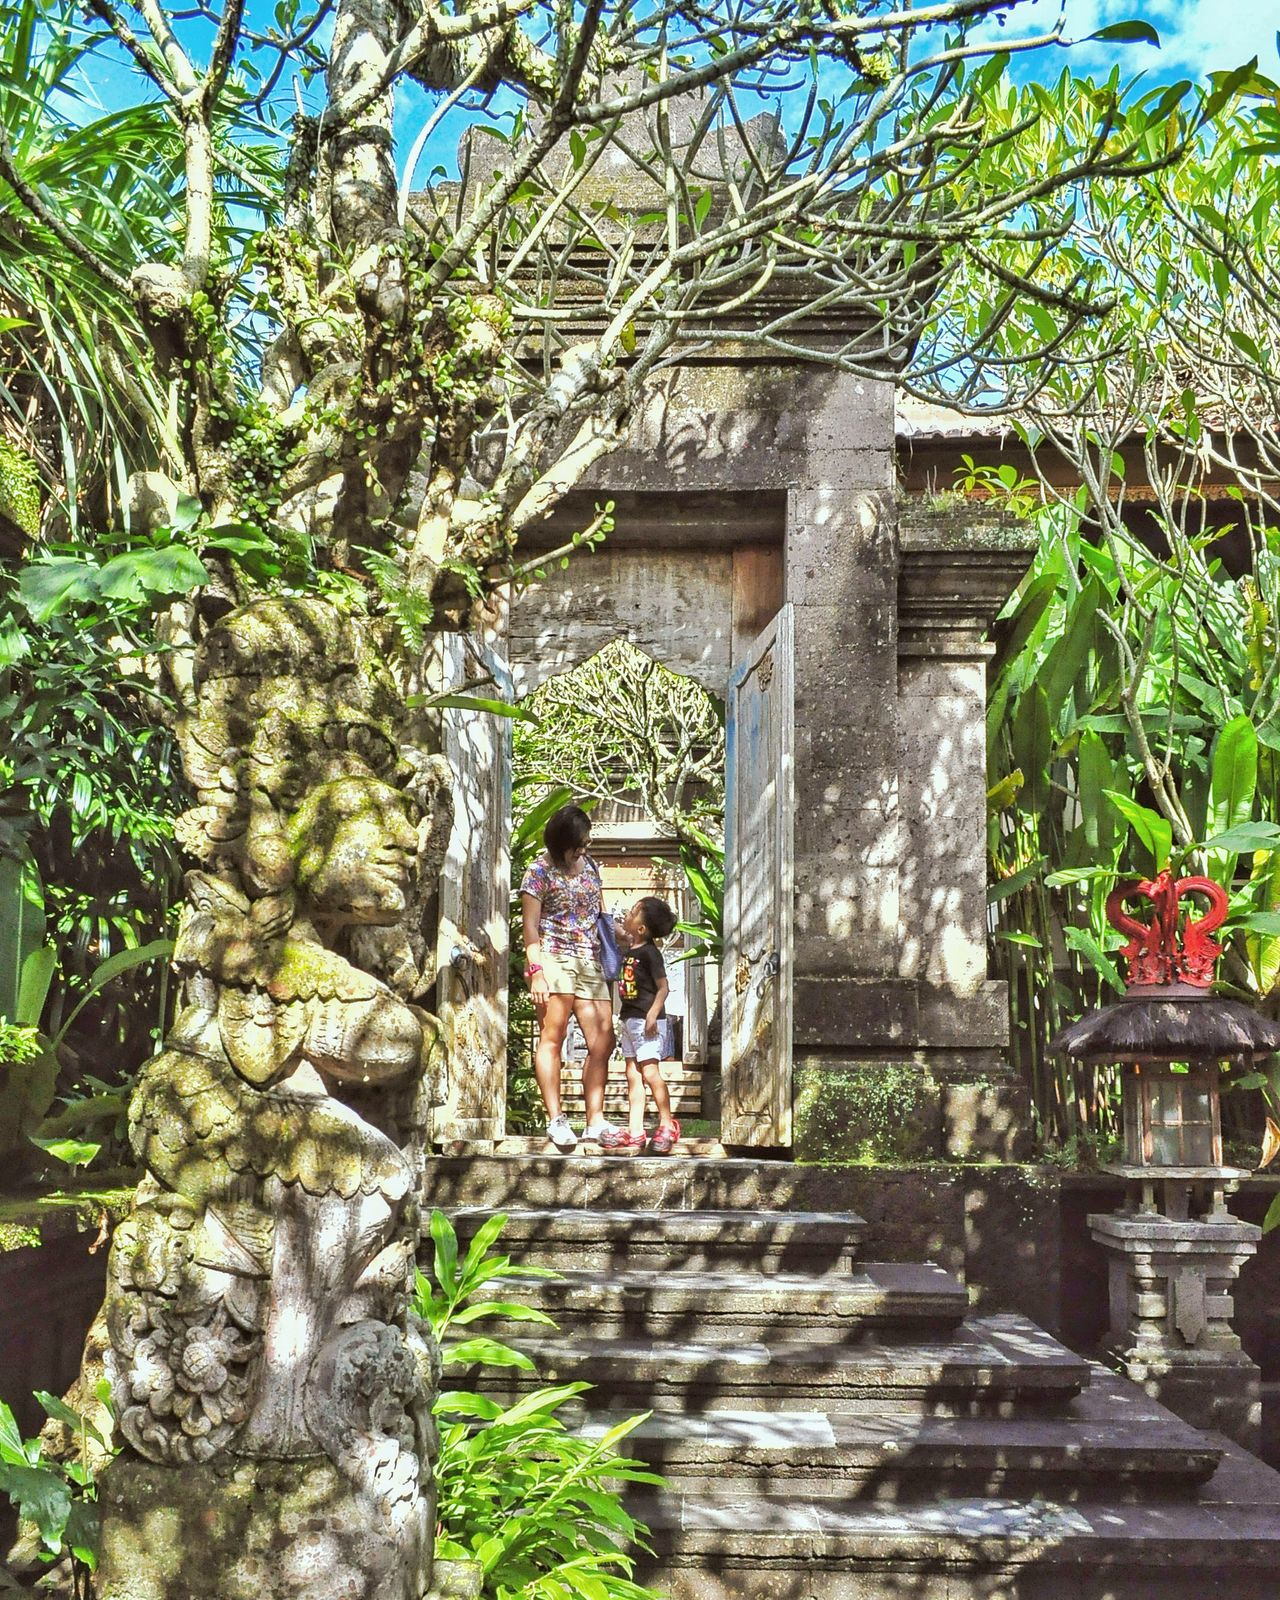 Tree Building Exterior Architecture Outdoors Day Sculpture Mom And Son Vacations Happiness Togetherness Tree Travel Bali Garden Ubud Tranquility